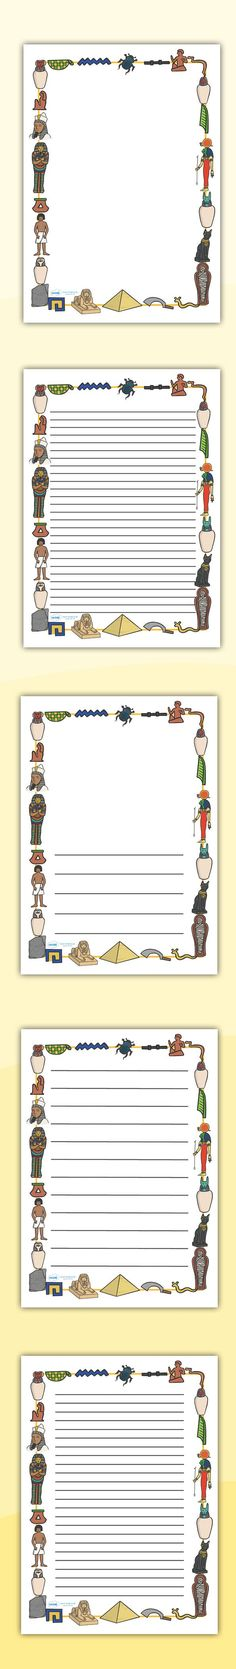 Online Help: Fja ancient egyptian essay topics great quality writing!